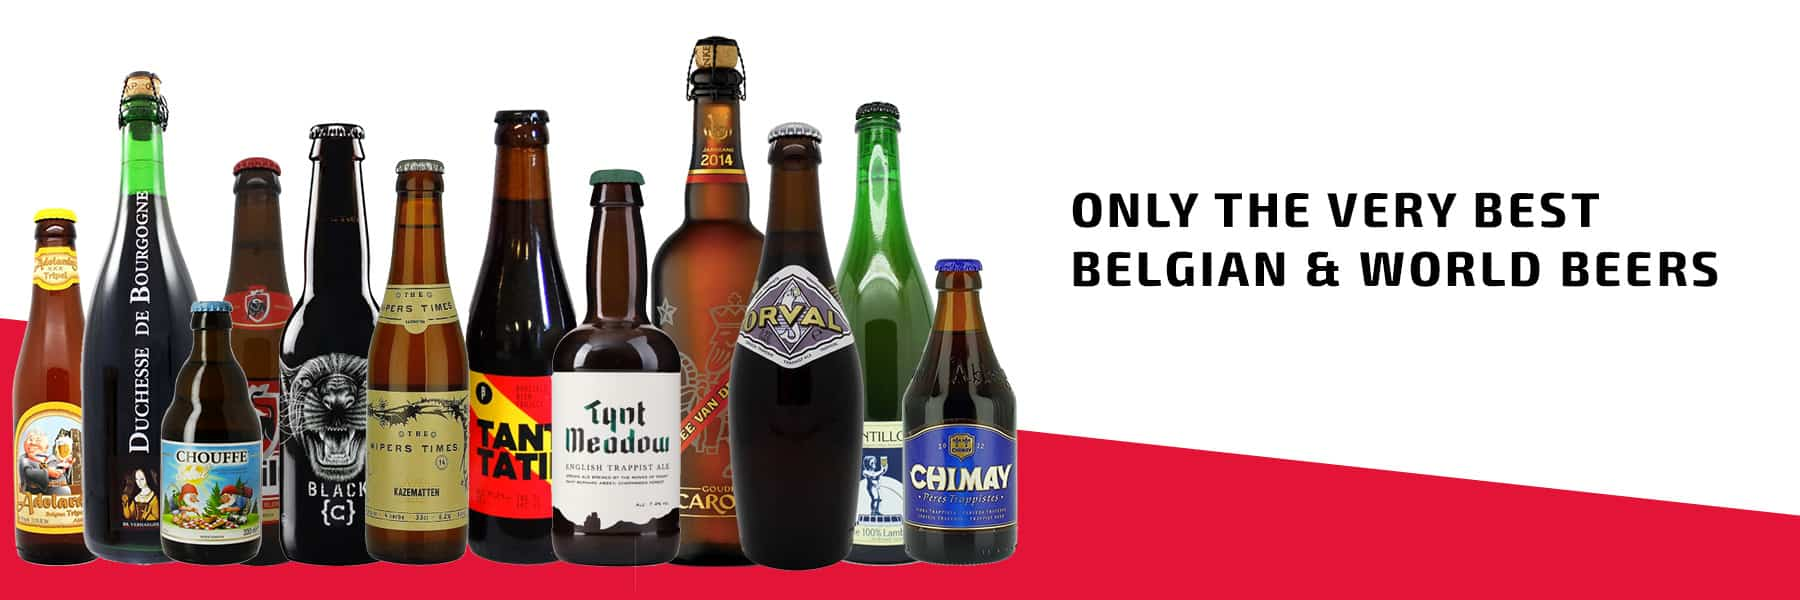 Only The Very Best Belgian and World Beers Banner